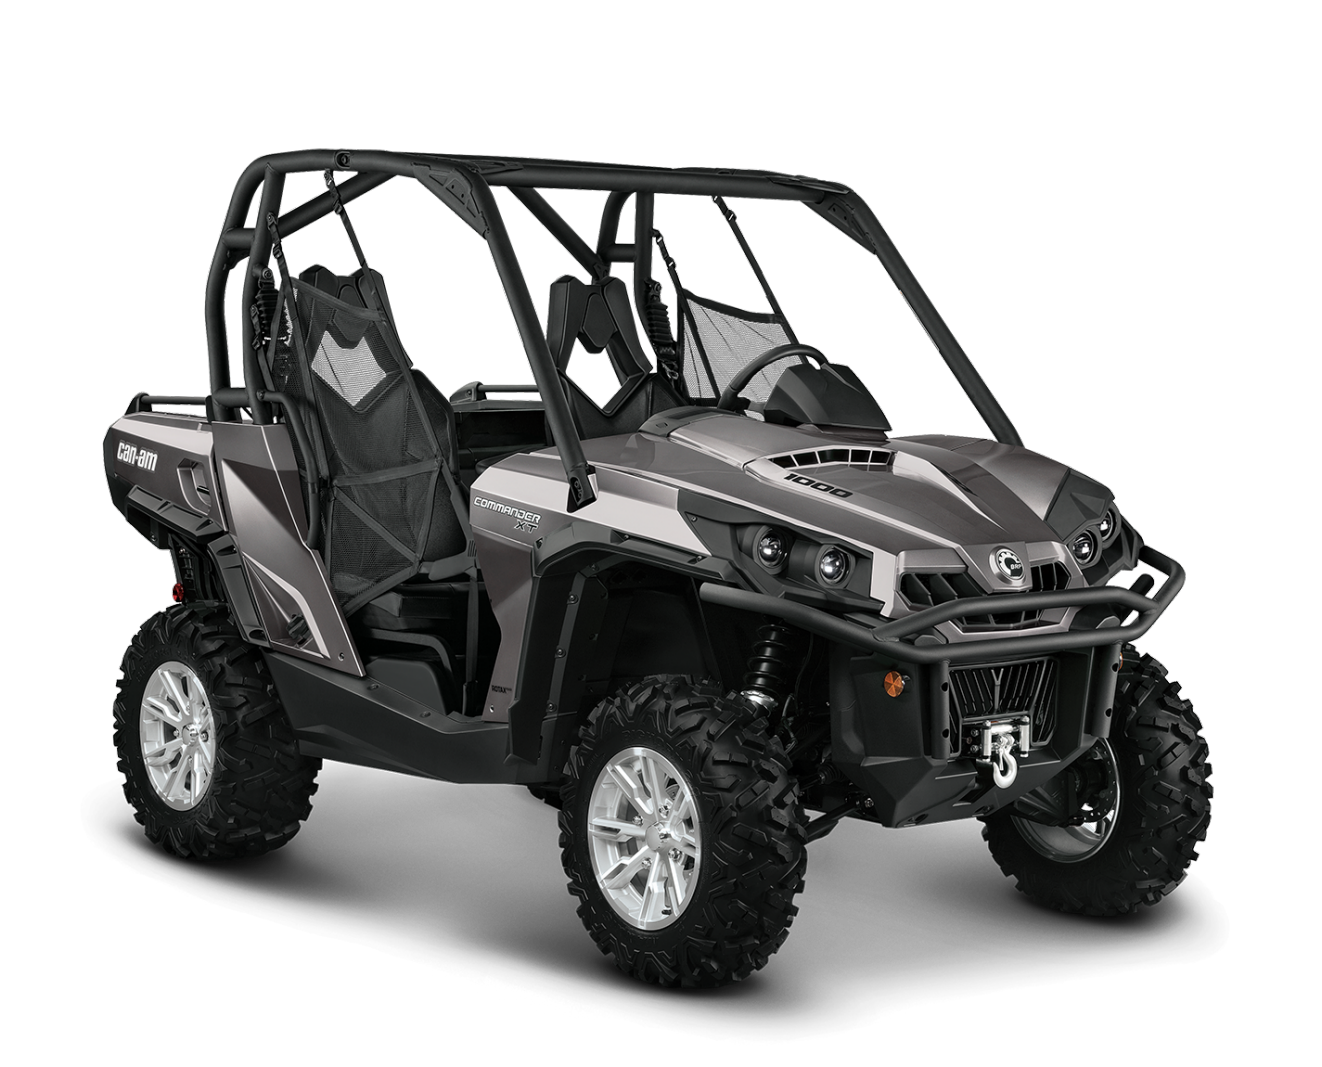 Best Side By Side Rec Utility Vehicle Can Am Commander Can Am Off Road Uk Ireland Can Am Commander Can Am Cdr